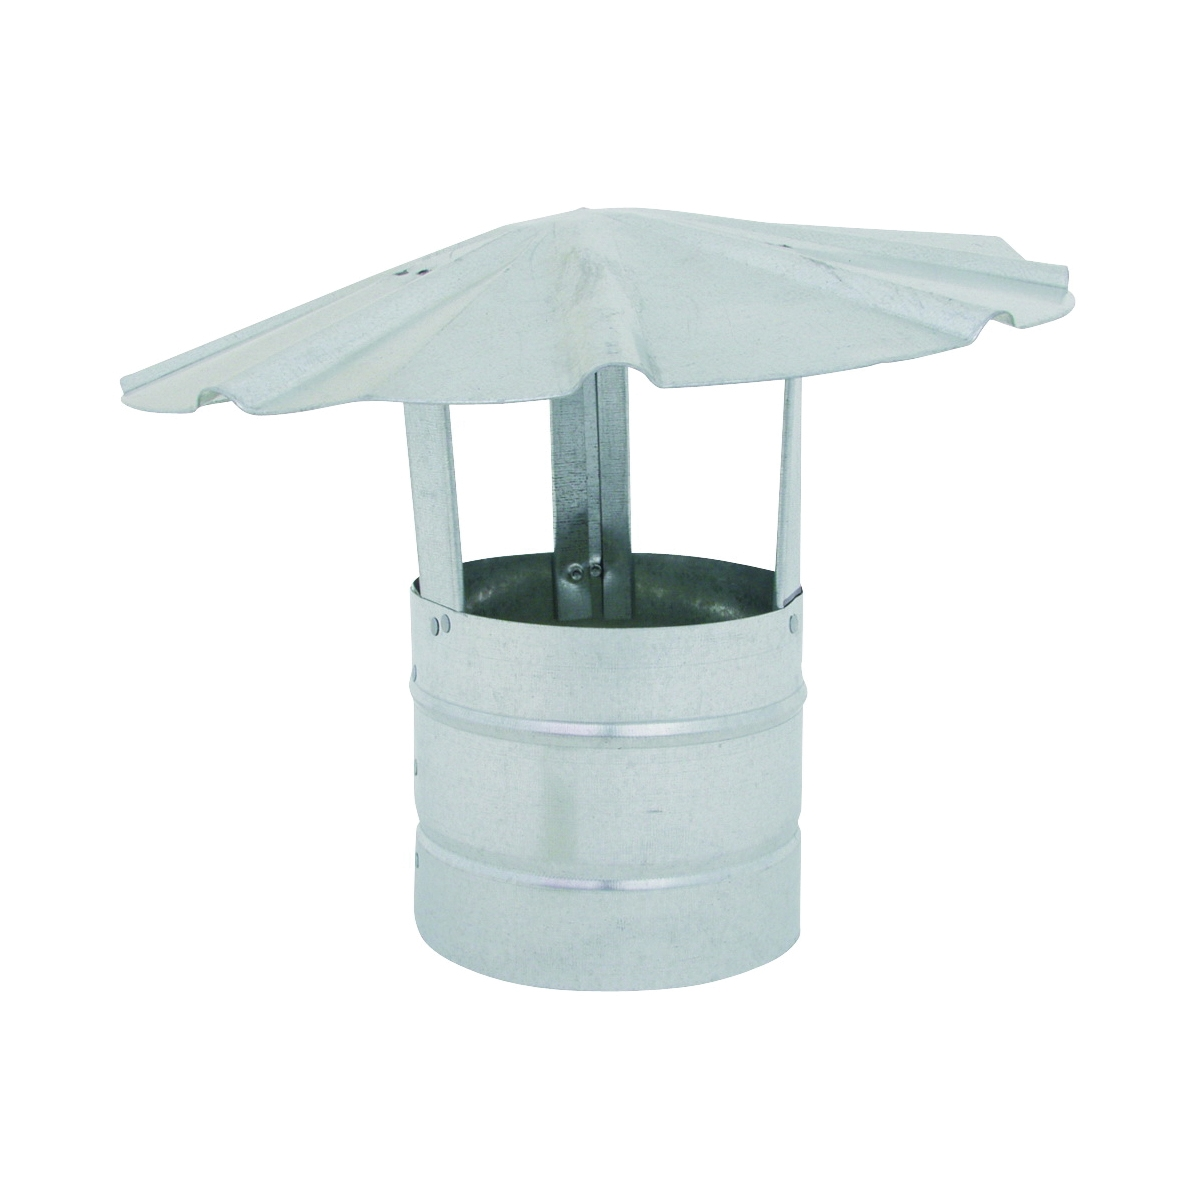 Picture of BILLY PENN 8102 Chimney Hood, 5 in Dia, Galvanized Steel